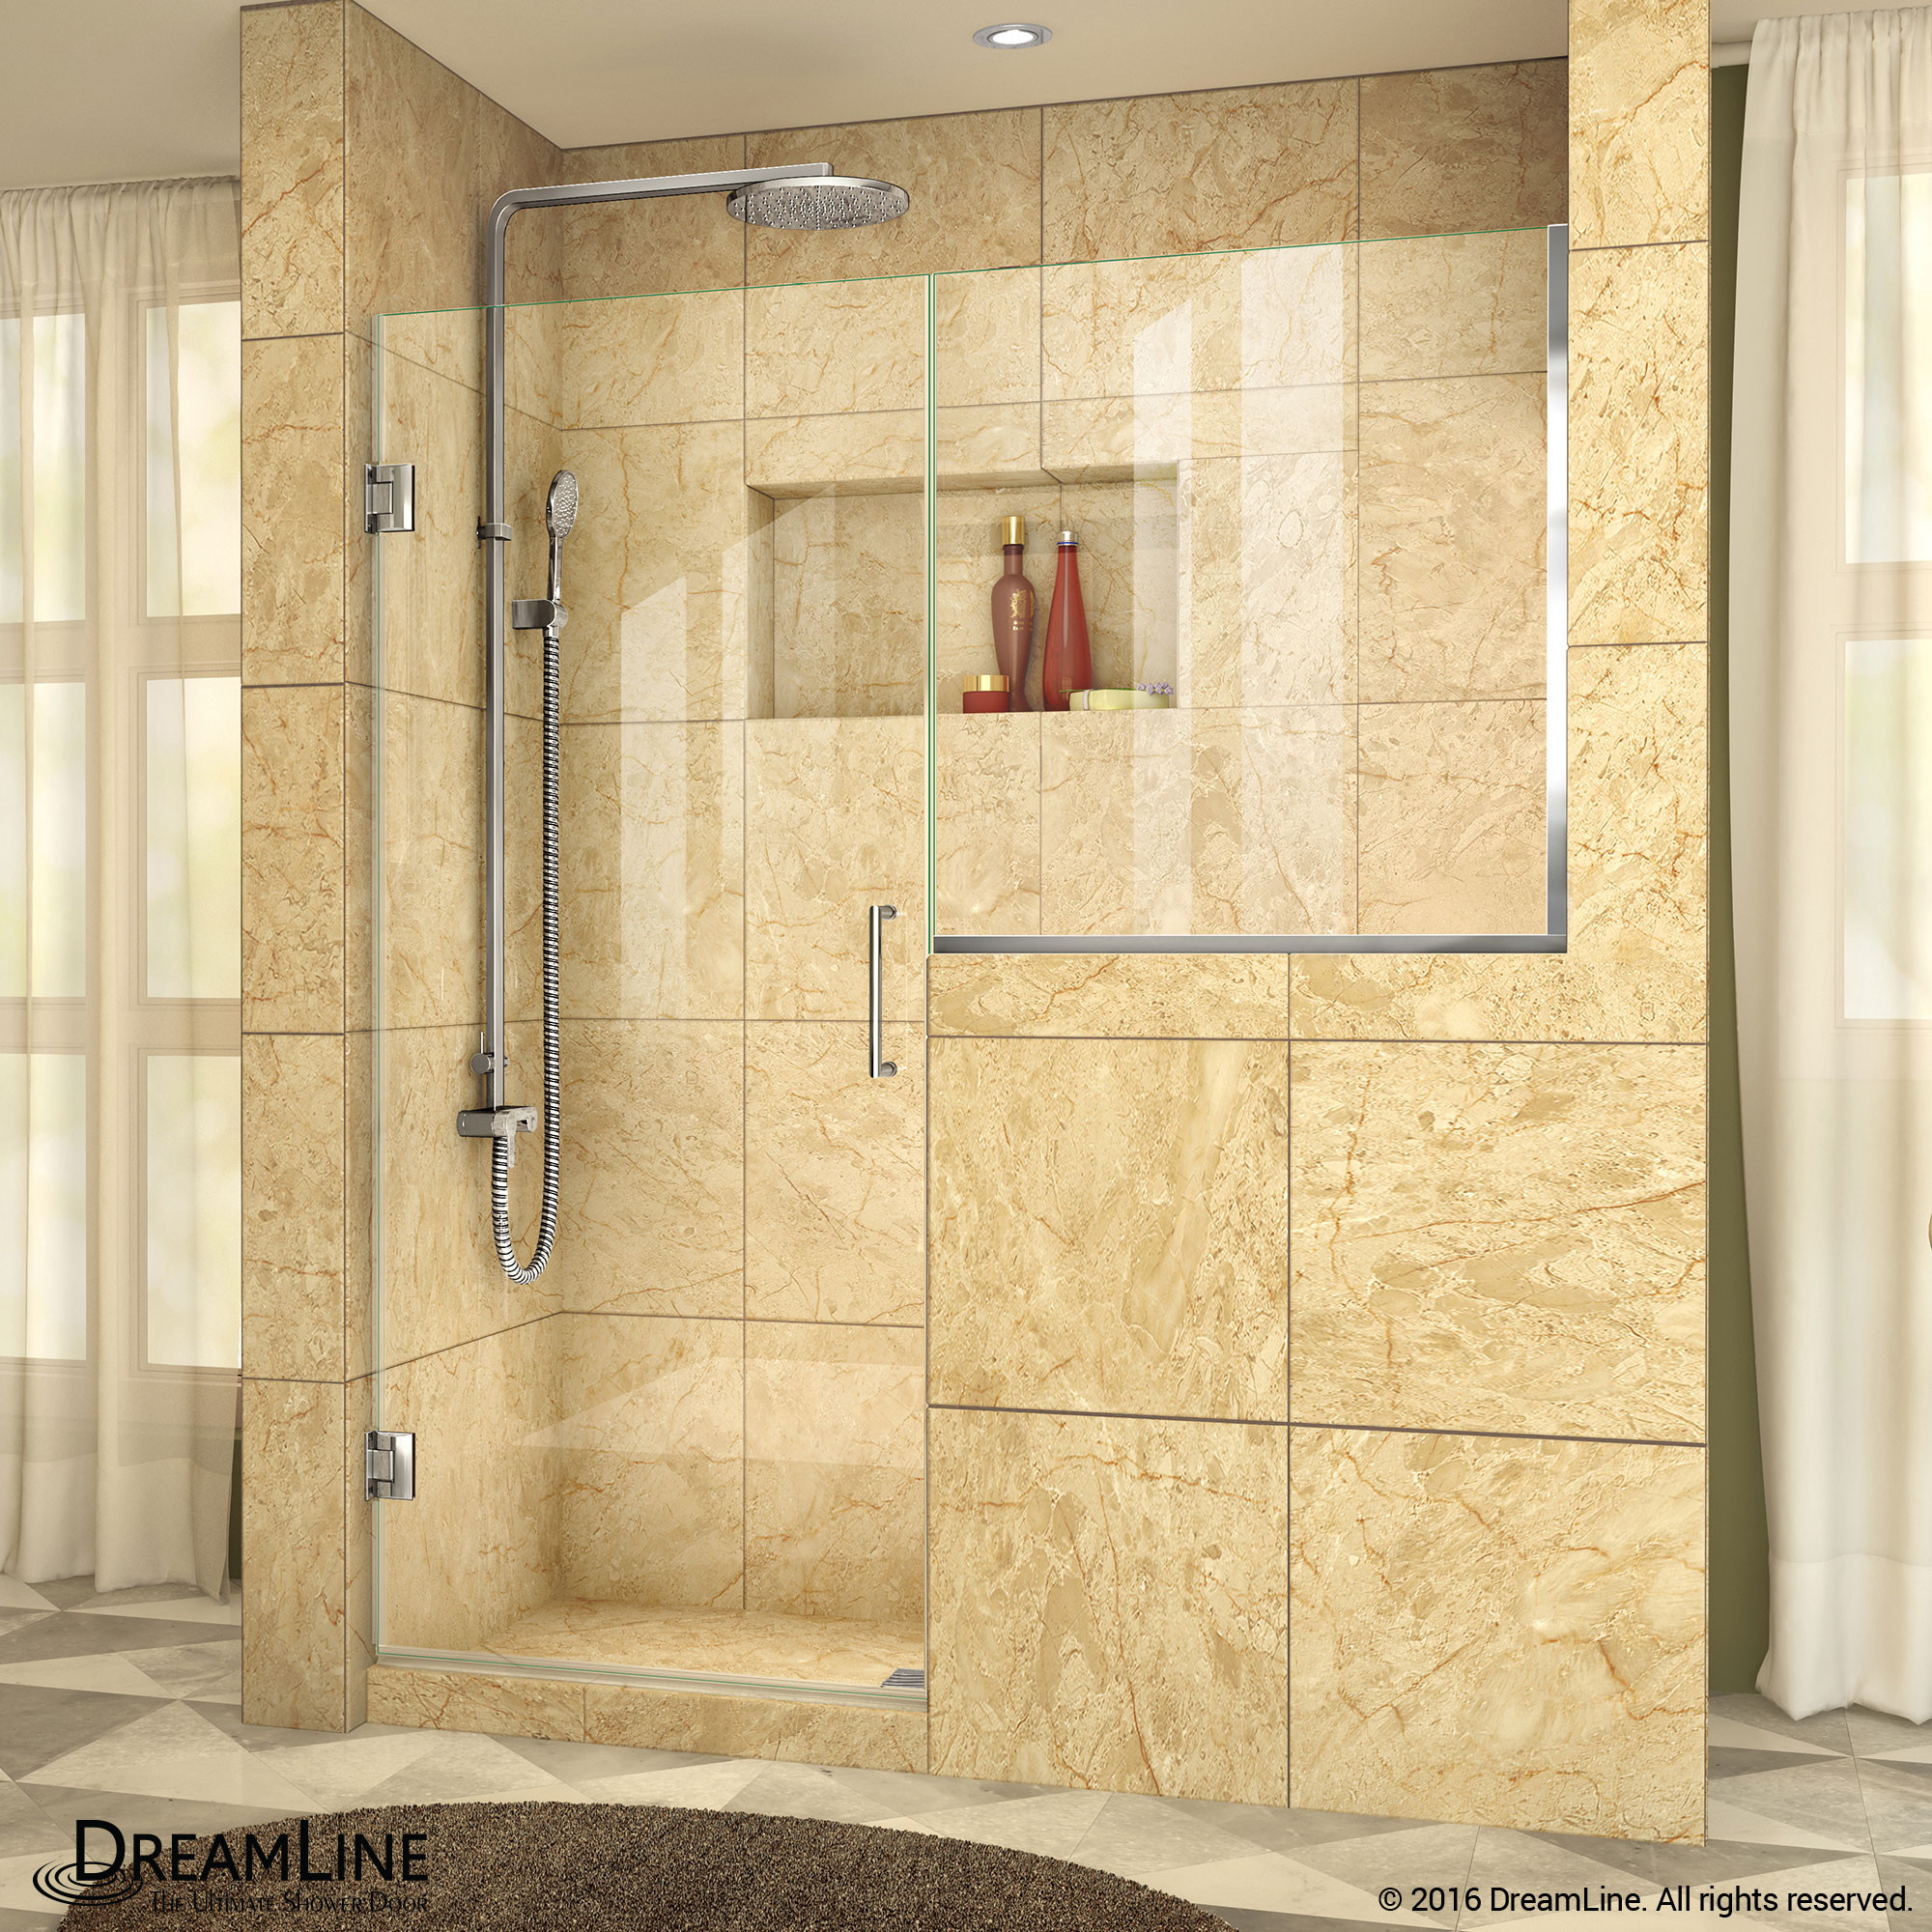 DreamLine SHDR-24303034-01 Unidoor Plus 60 - 60 1/2 in. W x 72 in. H Hinged Shower Door in Chrome